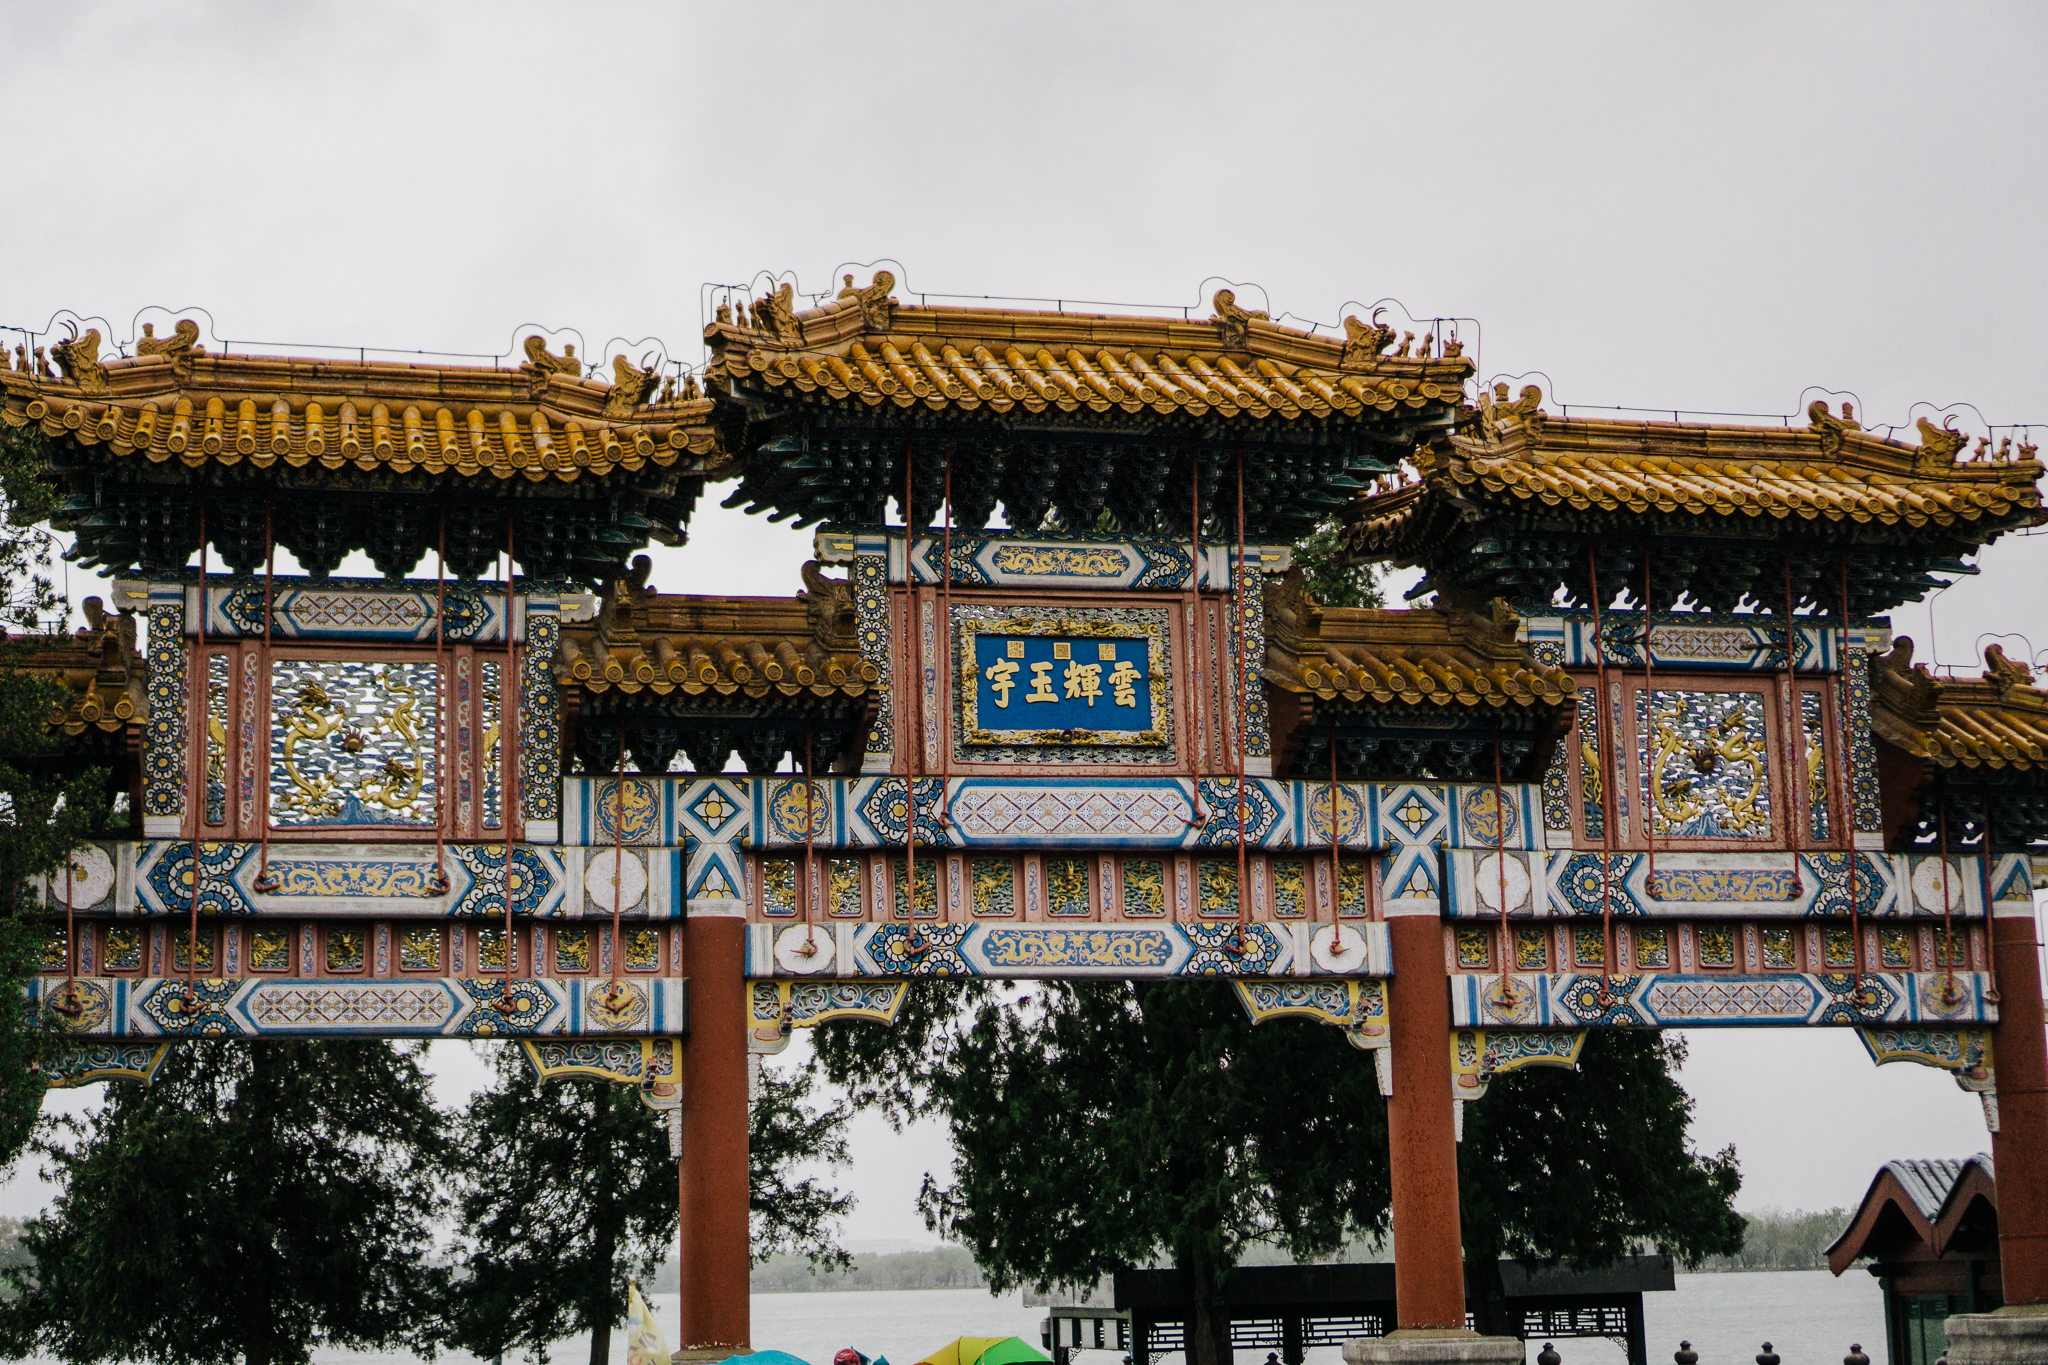 Mutianyu, Great Wall of China,  Beijing, Forbidden City, Emperors Summer Palace (8 of 12).jpg